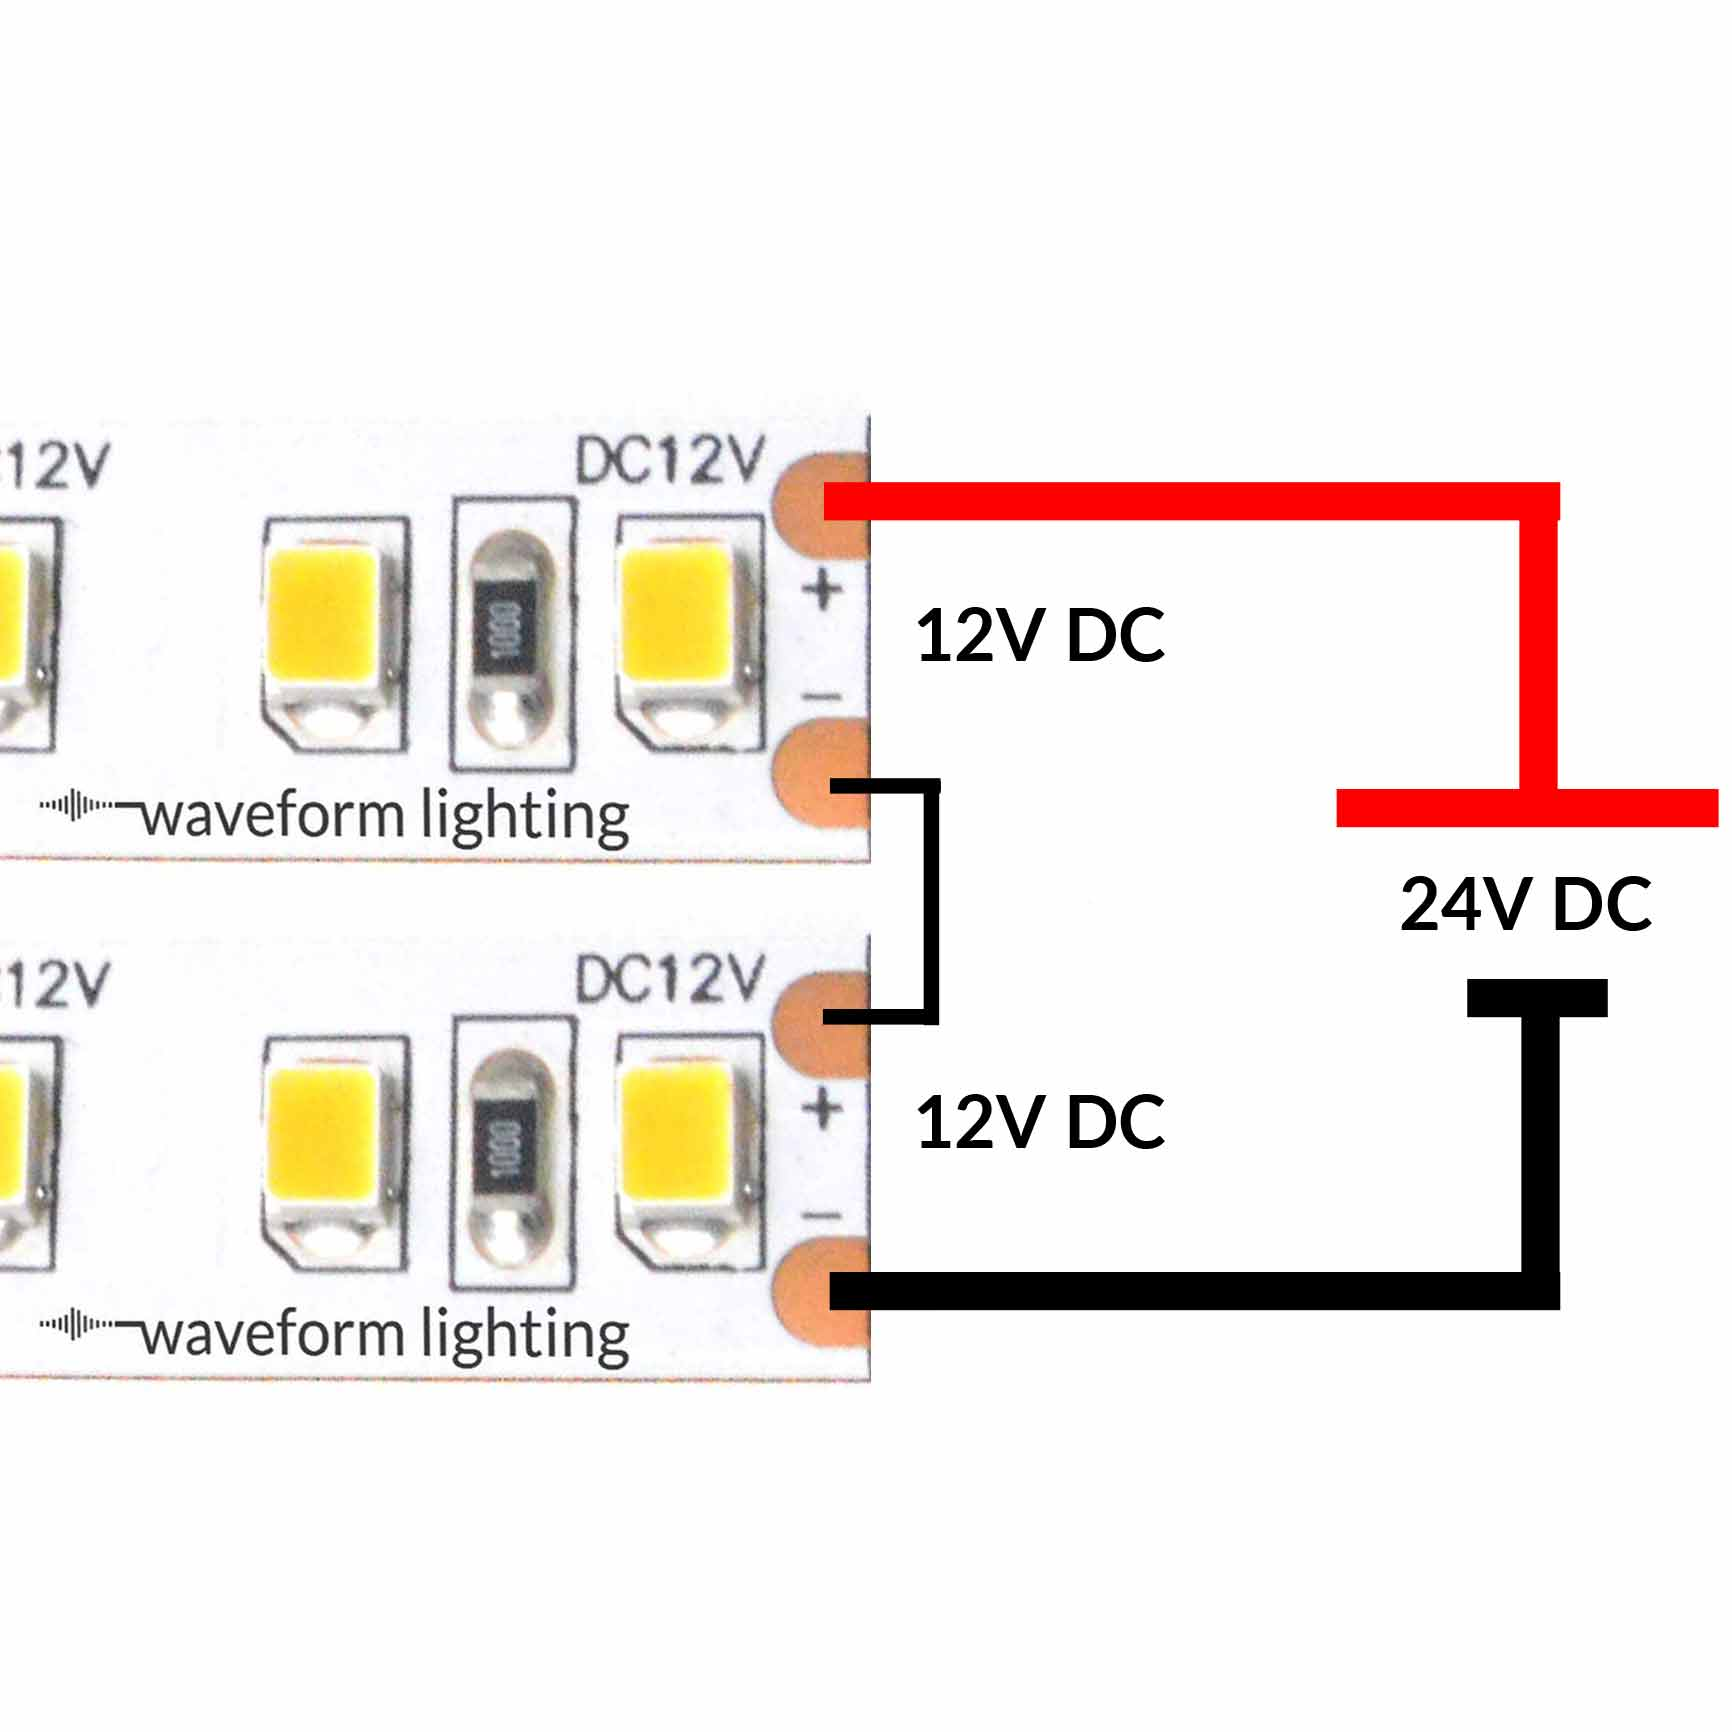 Using A 12v Led Strip In 24v System Waveform Lighting Resistor Value For Circuits Single Series Connection Parallel By Connecting The Strips This Way Power Source Is Effectively Split Between Two Segments Which Expect Each